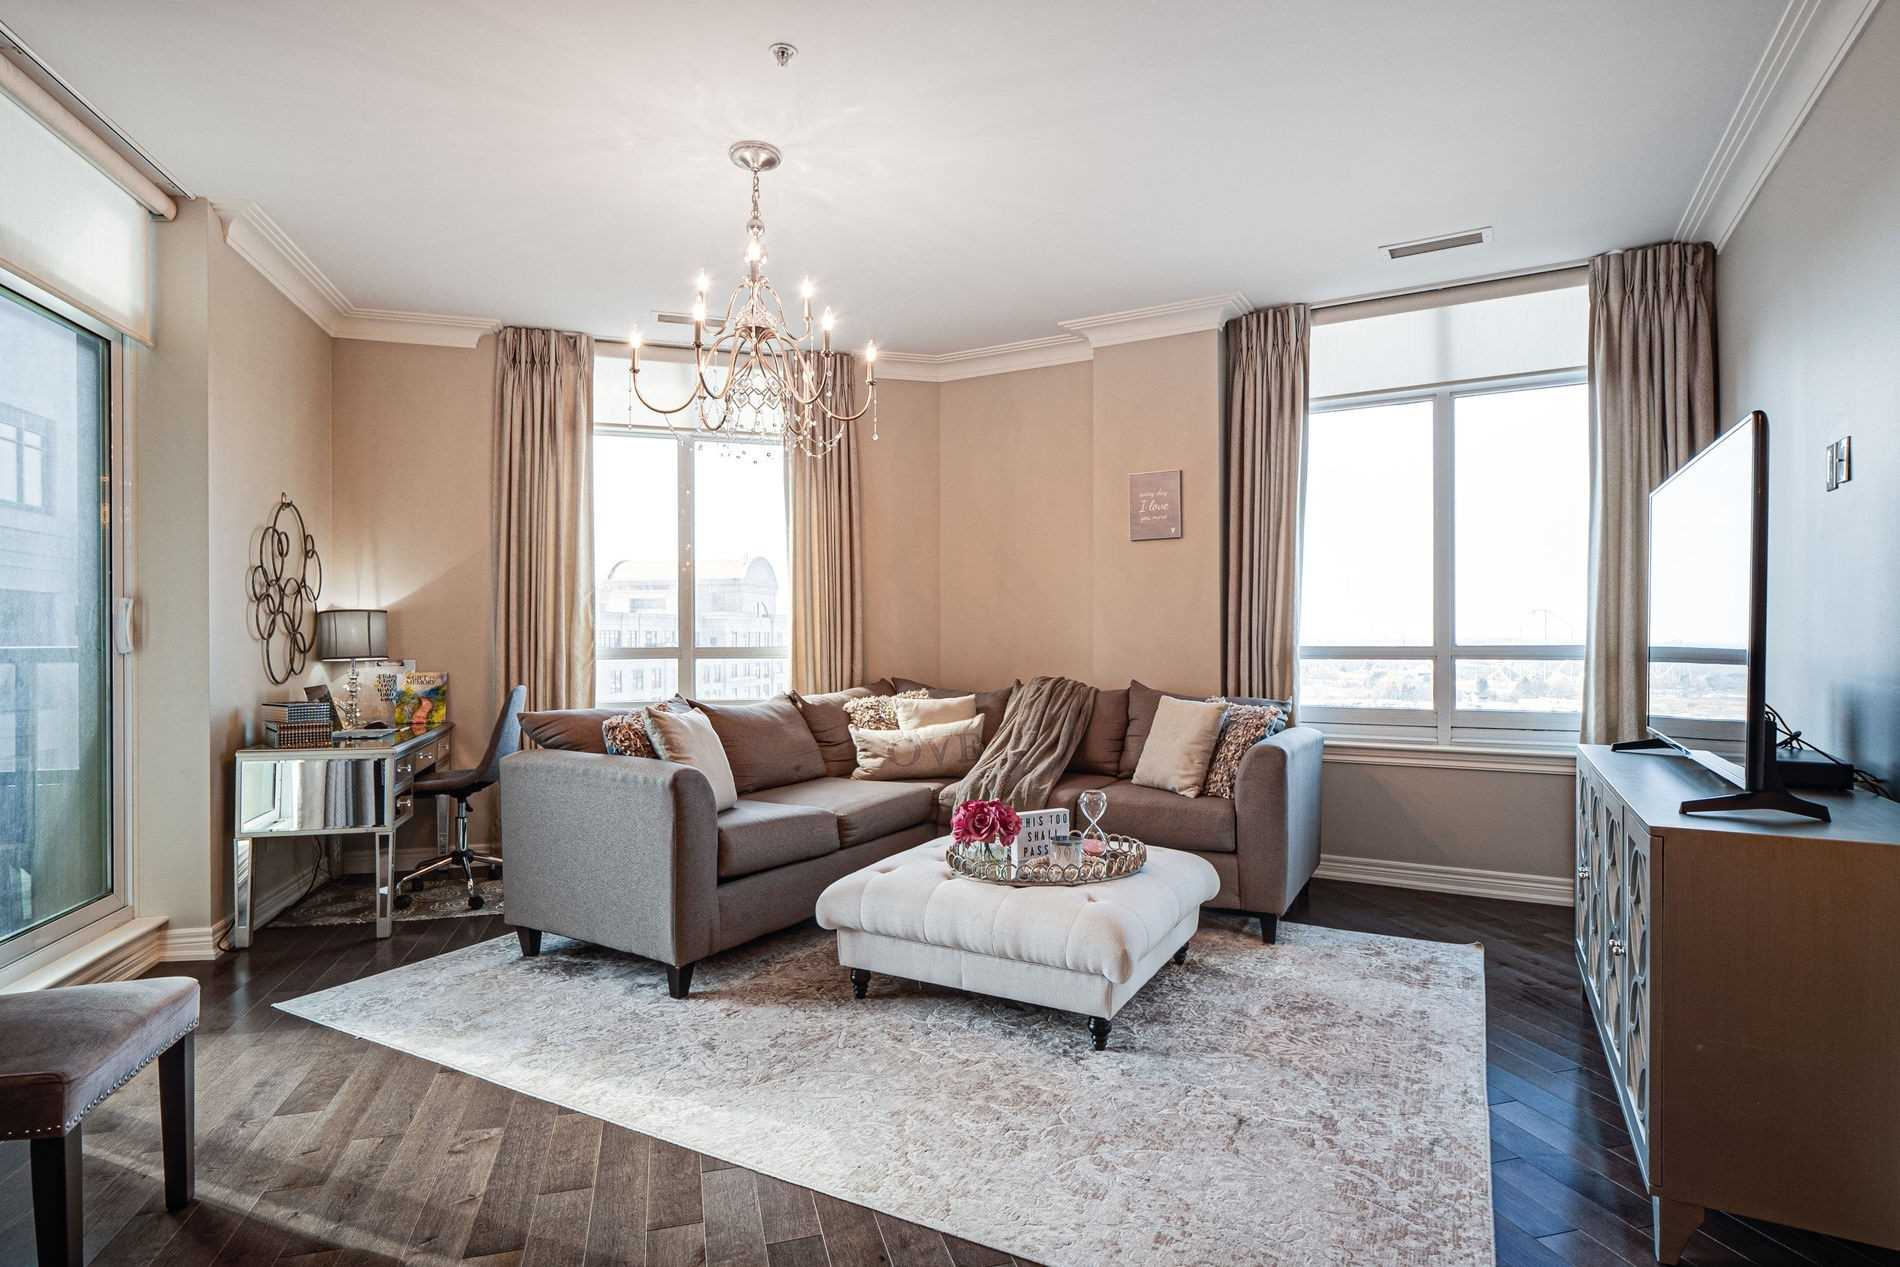 Image 7 of 40 showing inside of 2 Bedroom Condo Apt Apartment for Sale at 9255 Jane St Unit# 1702, Vaughan L6A0K1